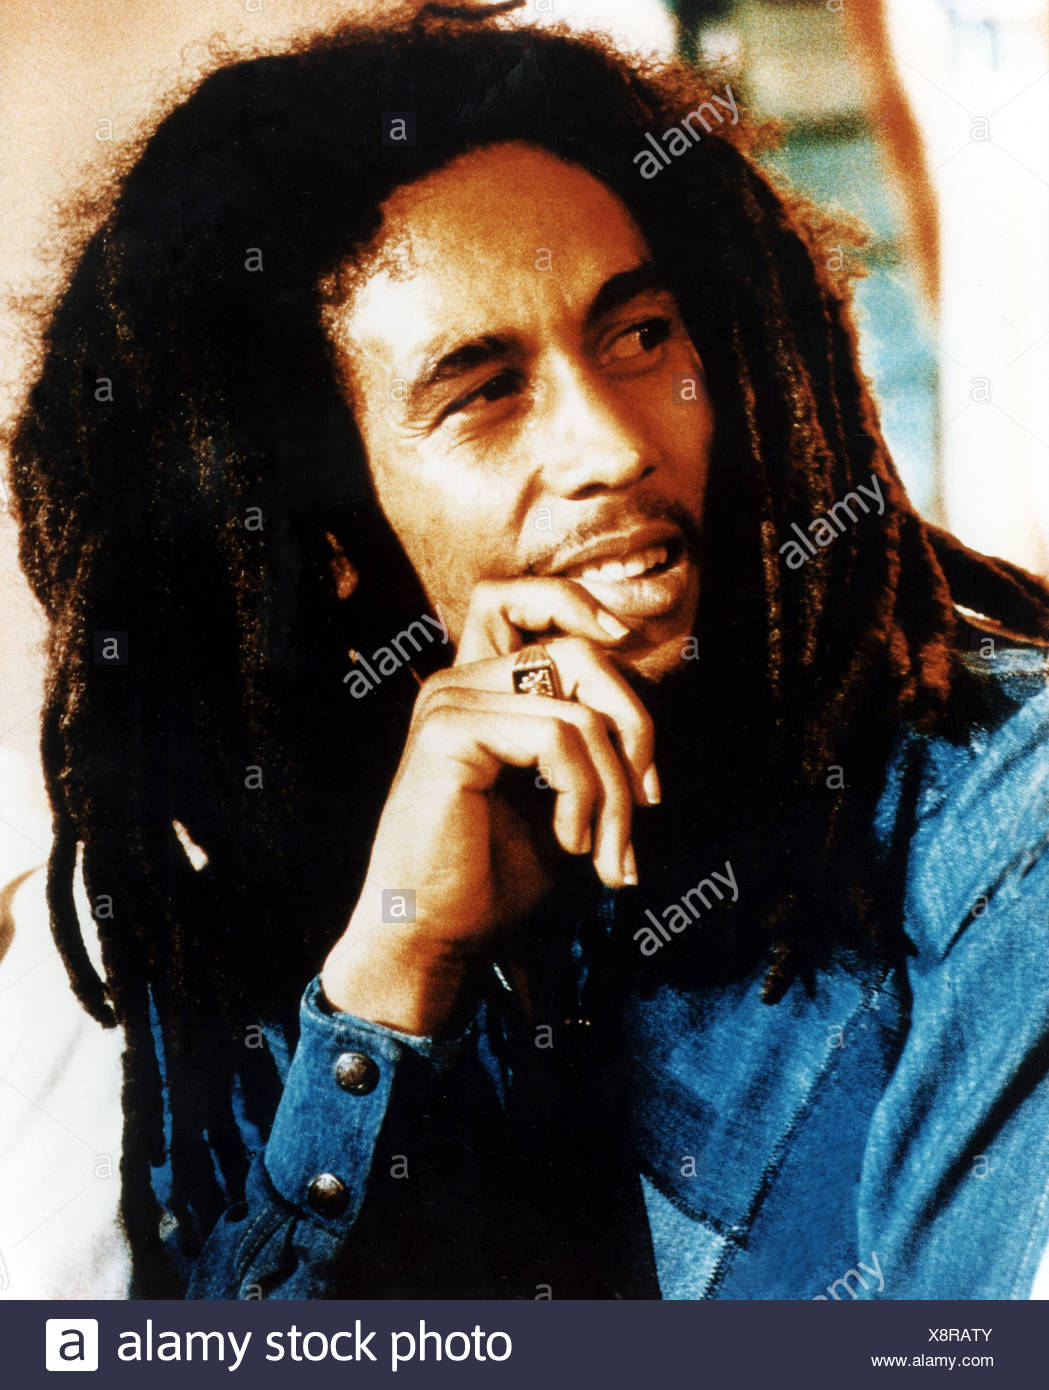 Marley, Bob, 6.2.1945 - 11.5.1981, Jamaican musician, portrait, 1970s, Additional-Rights-Clearances-NA - Stock Image